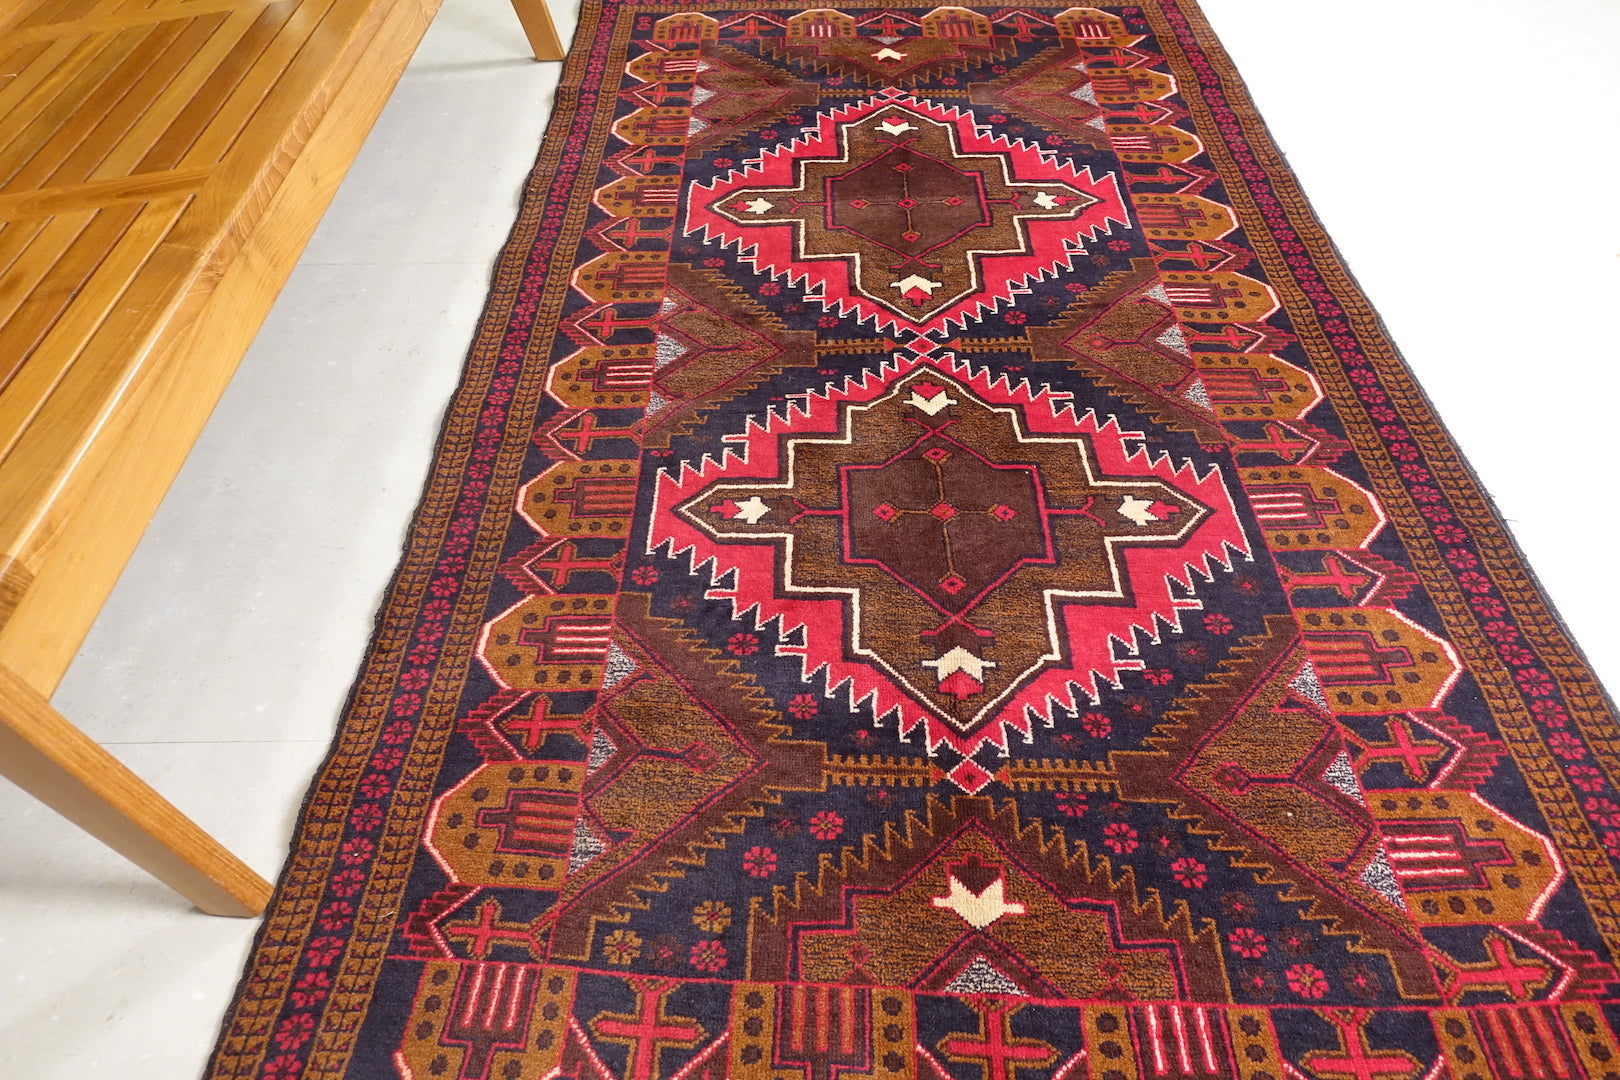 A 4 feet by 7.5 feet Balochi wool rug, the colours used are red, orange and blue.